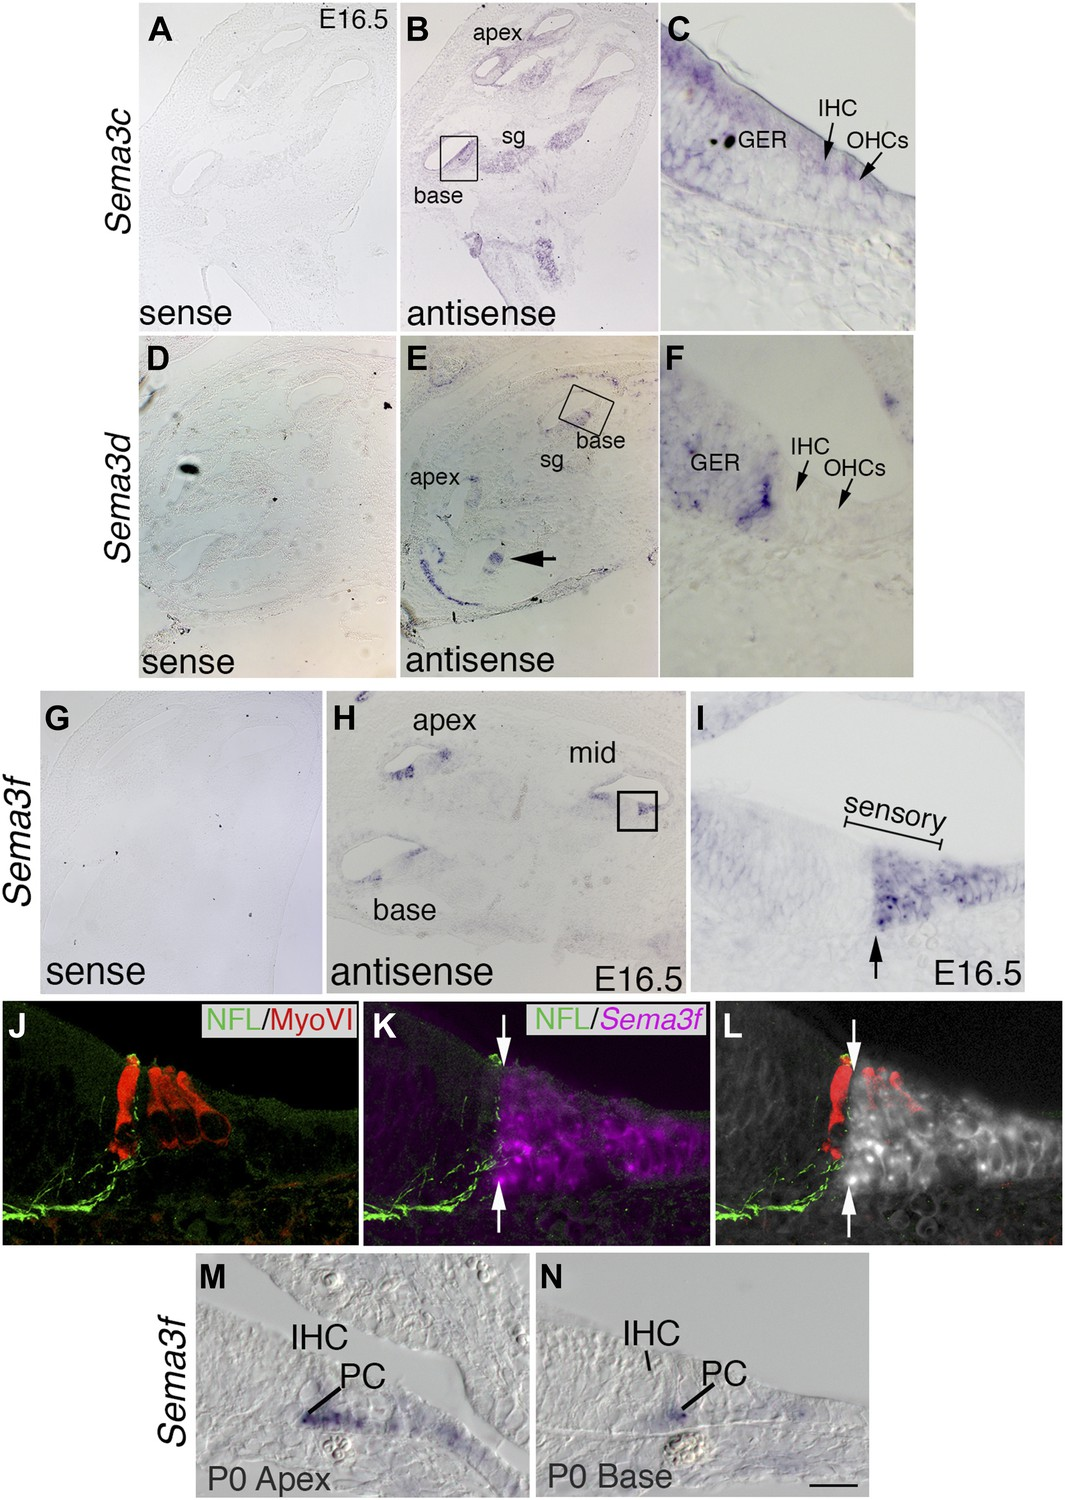 Neuropilin 2 Semaphorin 3f Mediated Repulsion Promotes Inner Hair Apex Wiring Solutions Ltd The Expression Pattern Of Sema3f Suggests A Role In Nrp2 Signaling During Cochlear Innervation